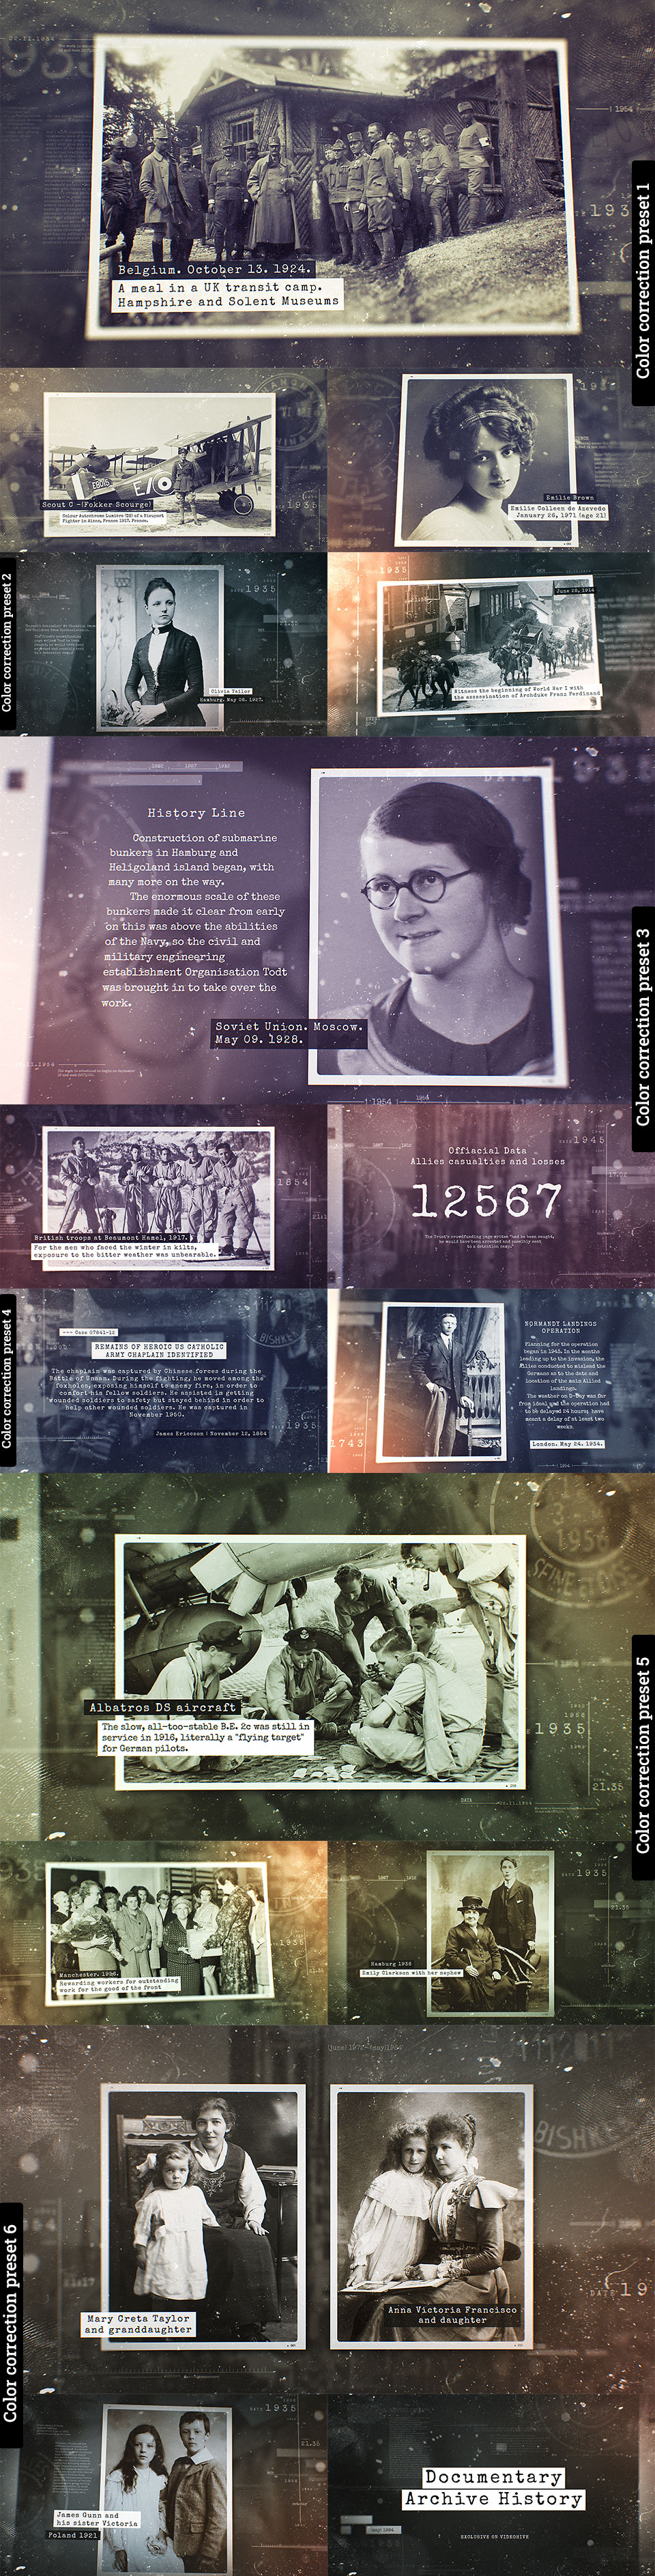 Documentary Archive History - 1